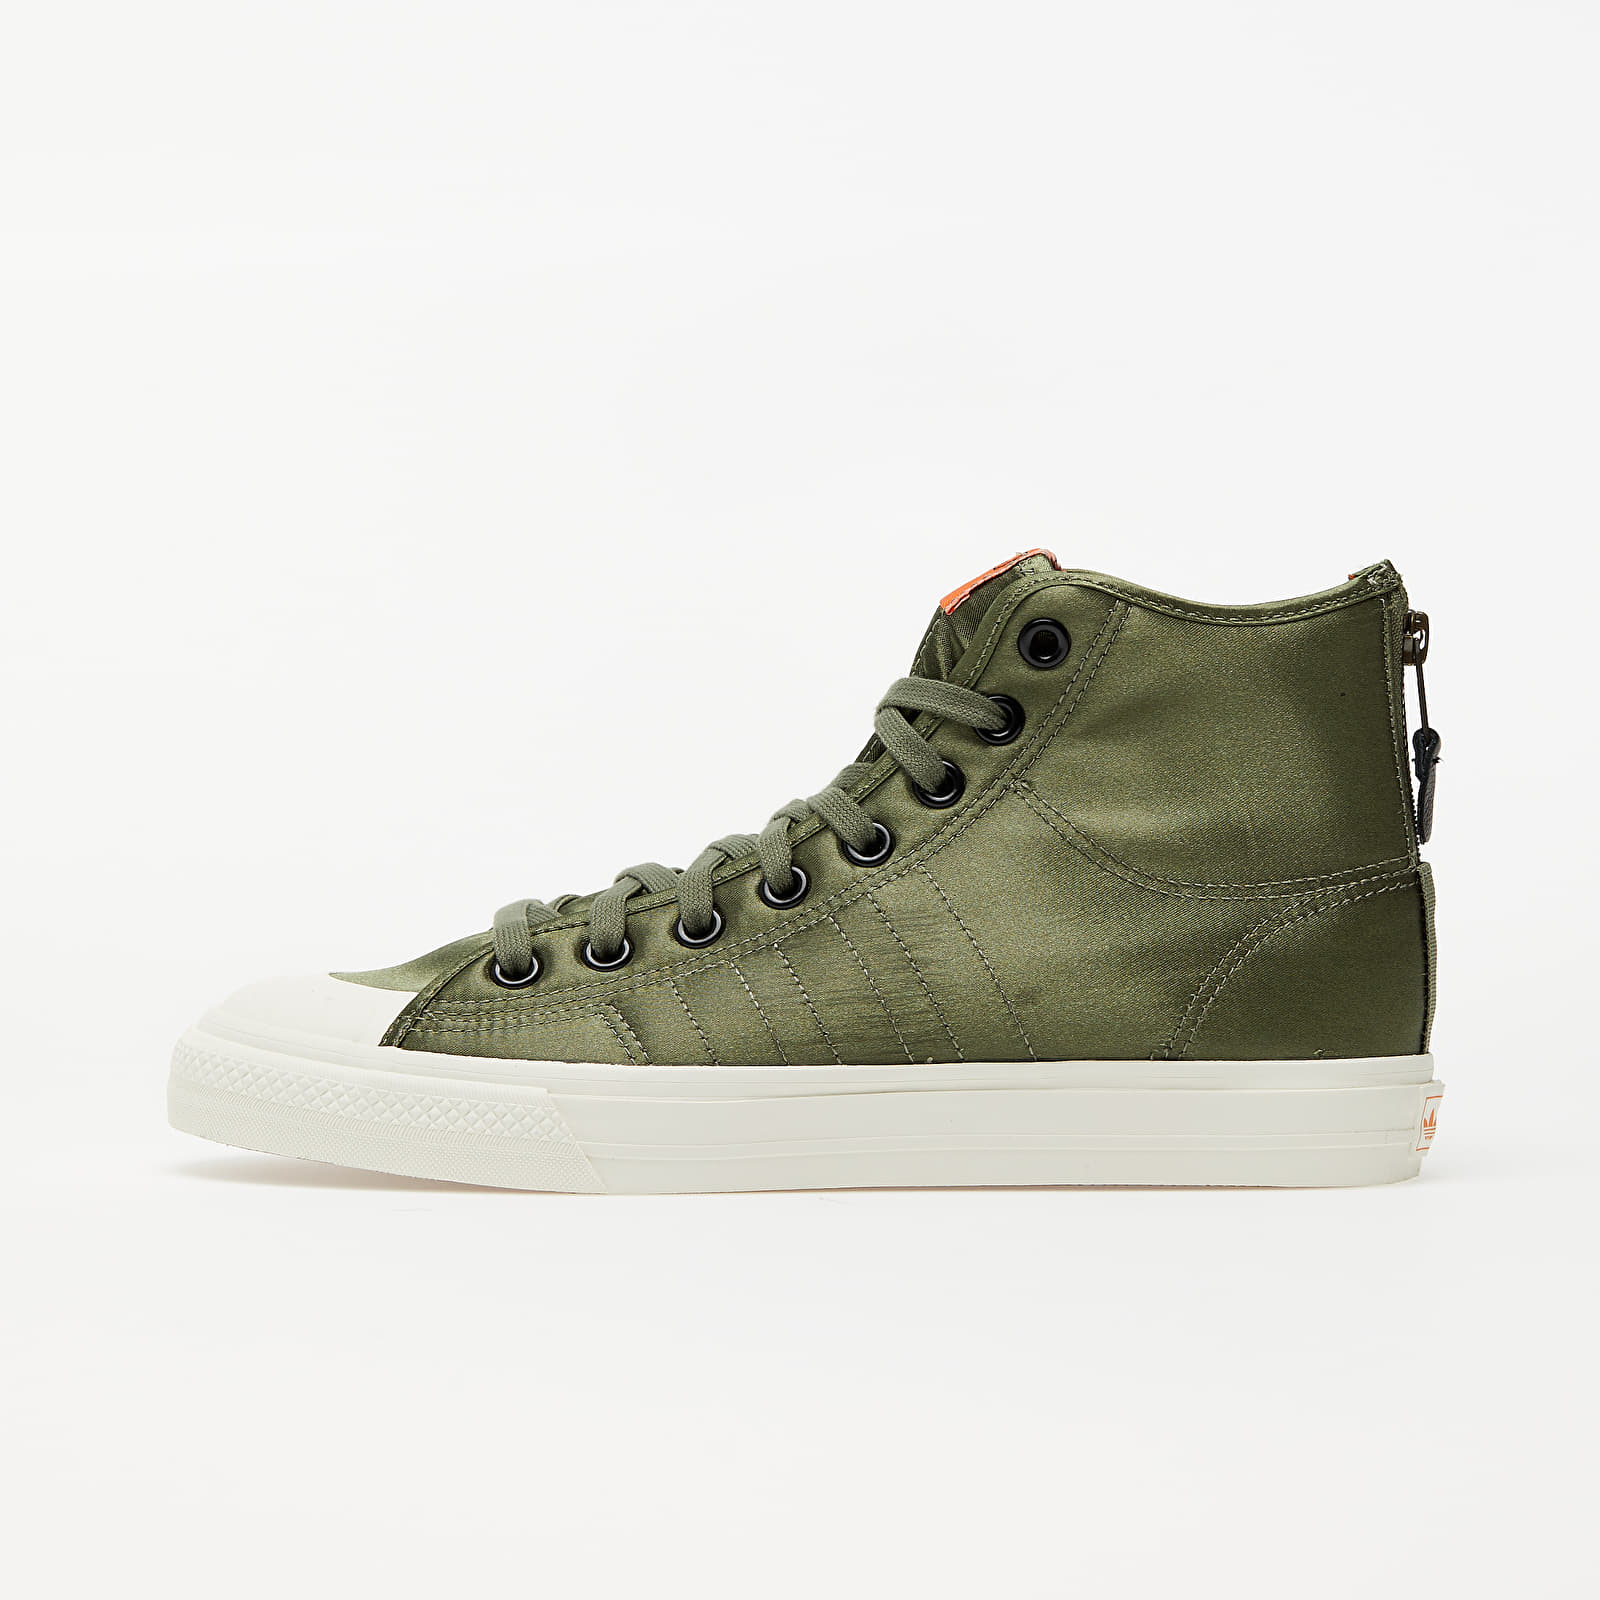 adidas Nizza Hi RF Legend Green/ Orange/ Off White EUR 42